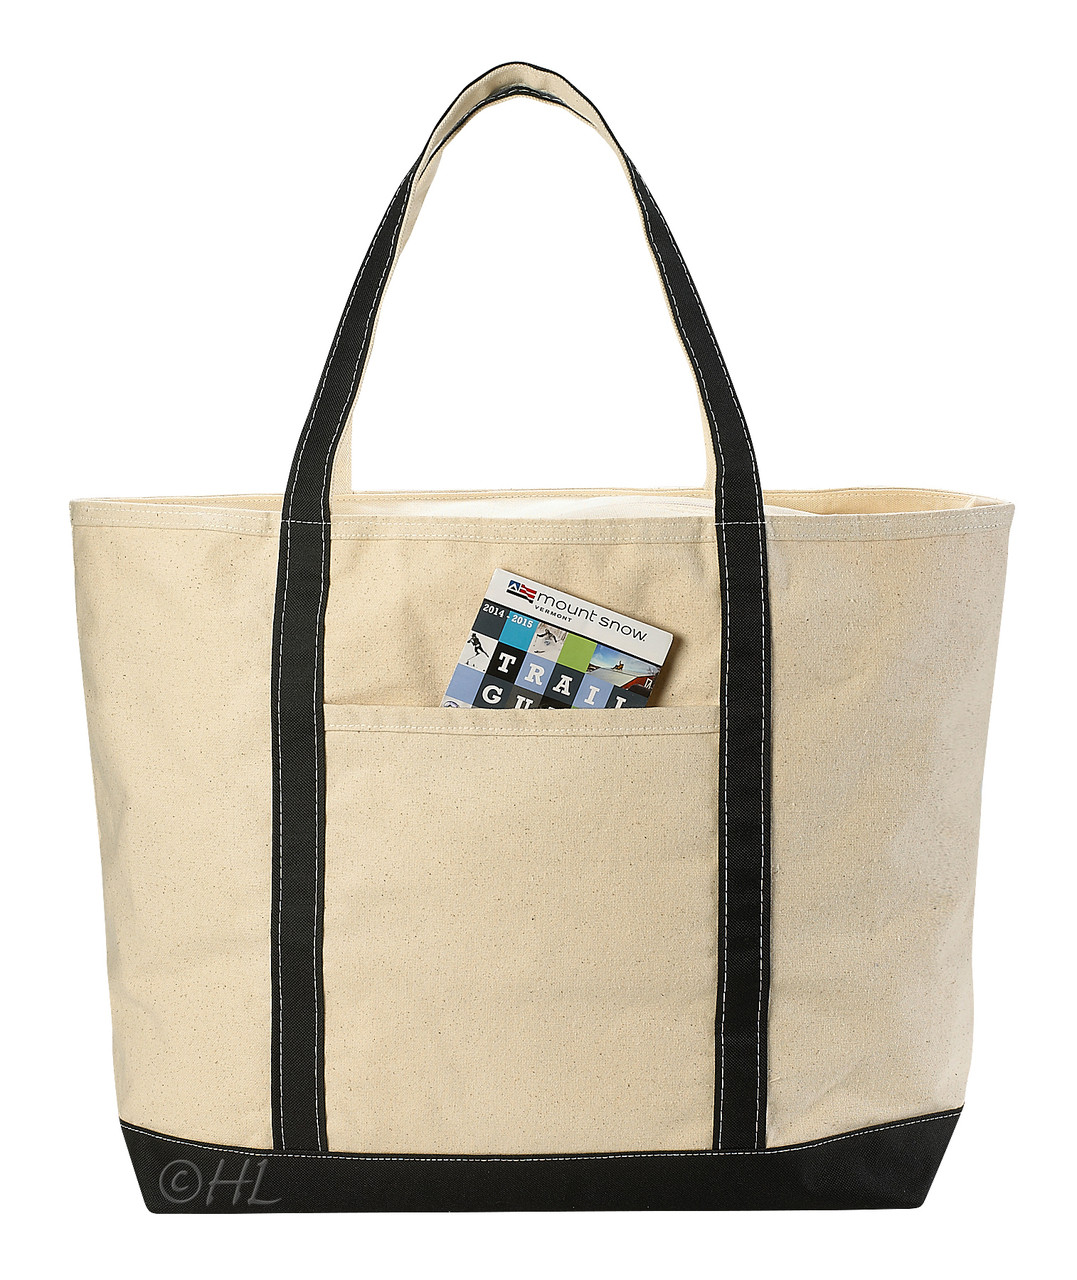 Canvas Tote Beach Bag | 22 x 16 | Assorted Colors